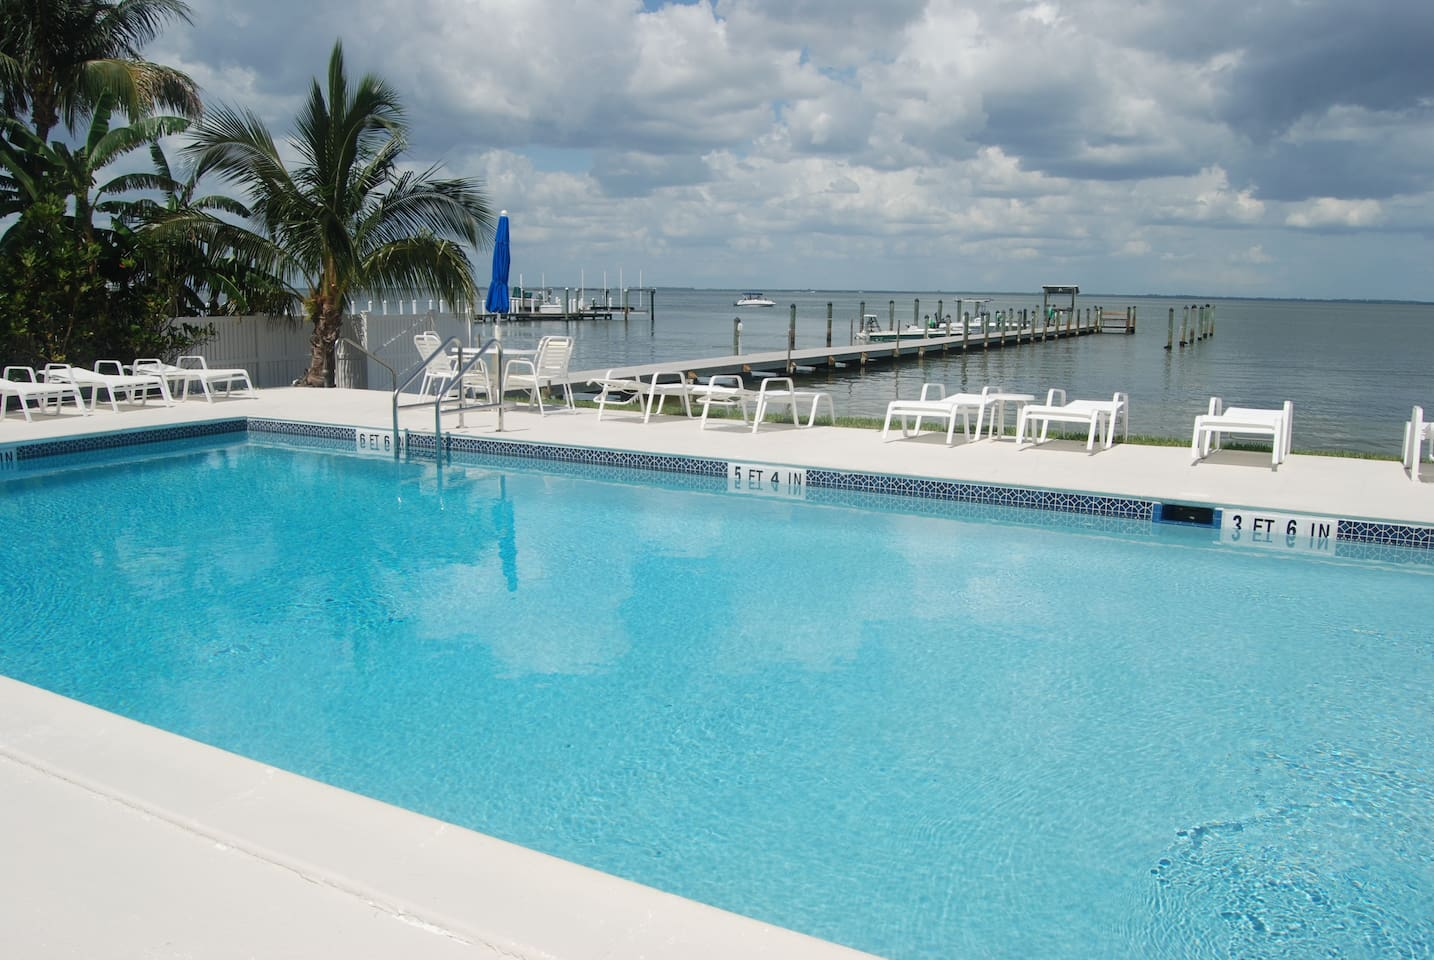 The pool area looks out over Pine Island Sound and the pier where manatee are often seen.